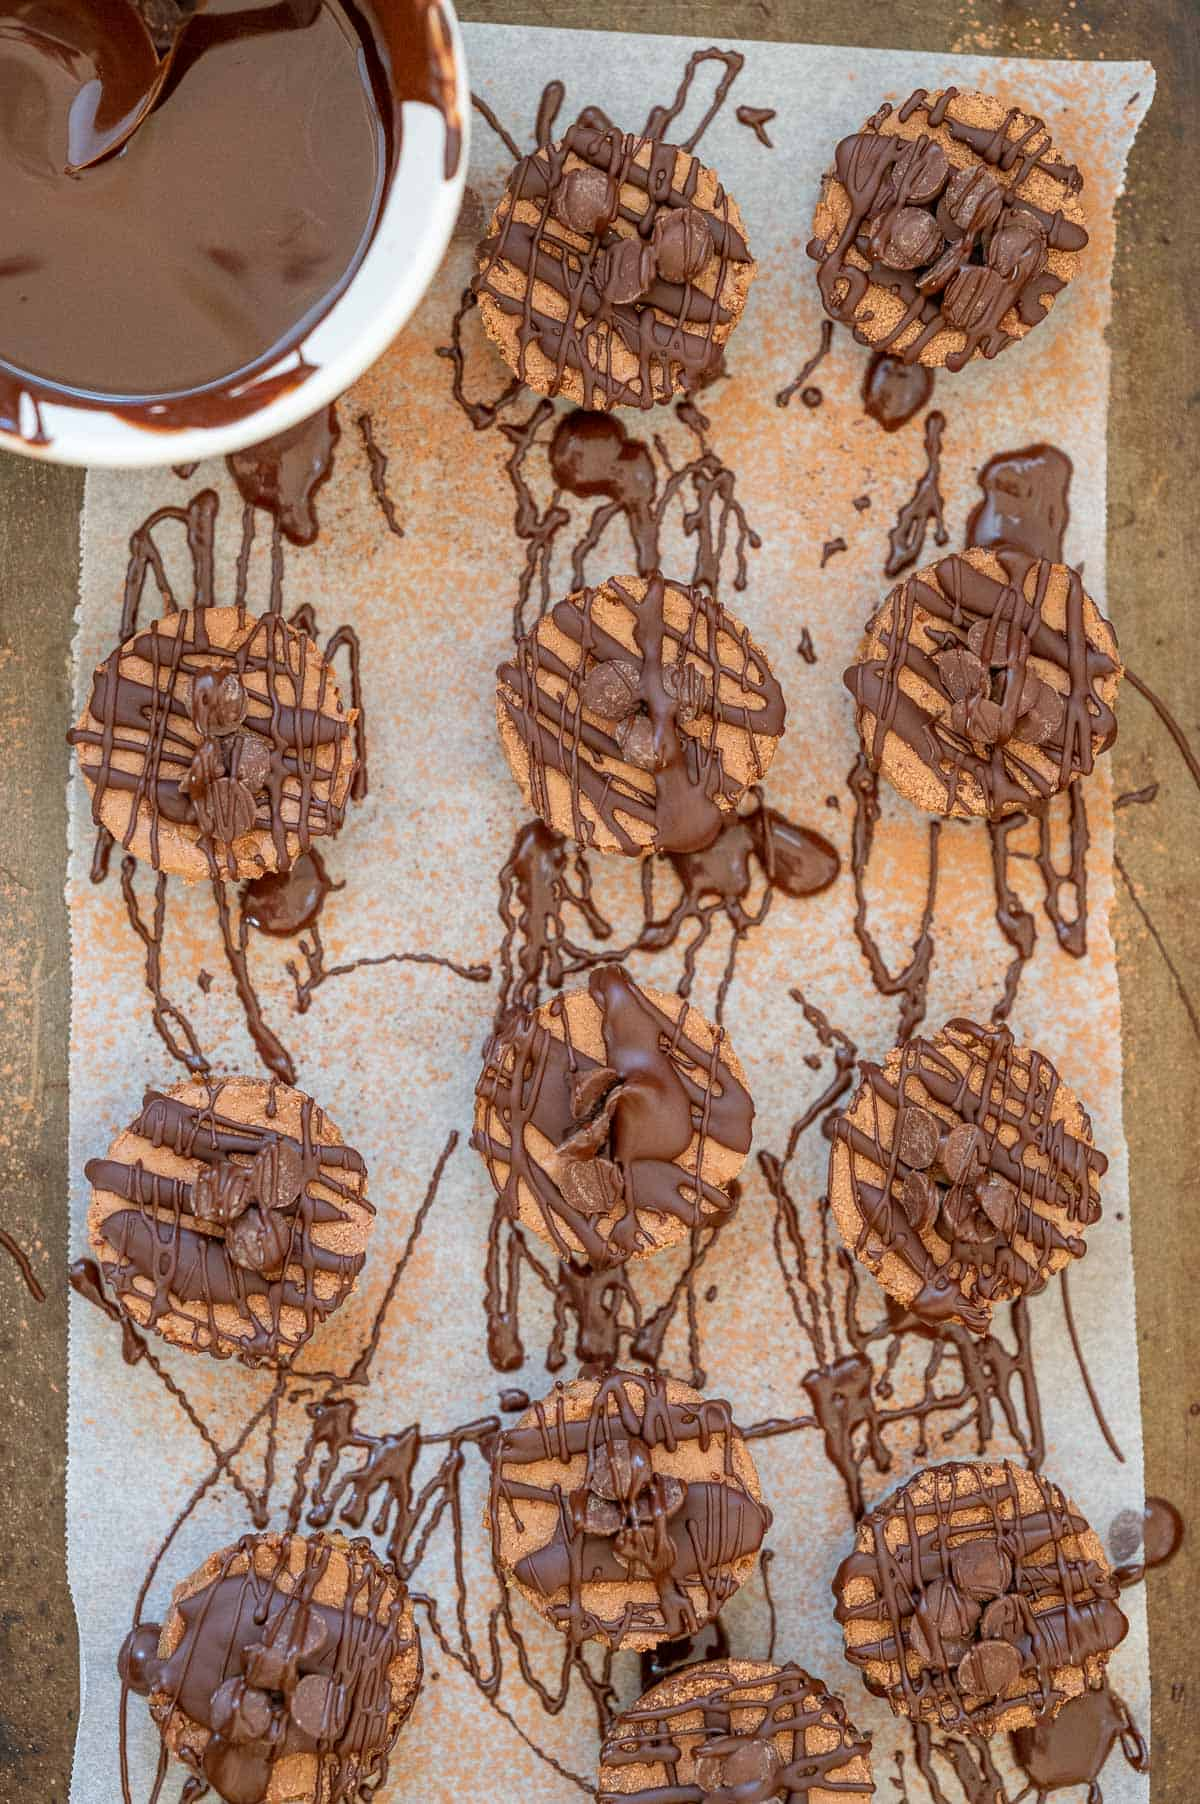 cheesecakes on a tray with chocolate drizzle